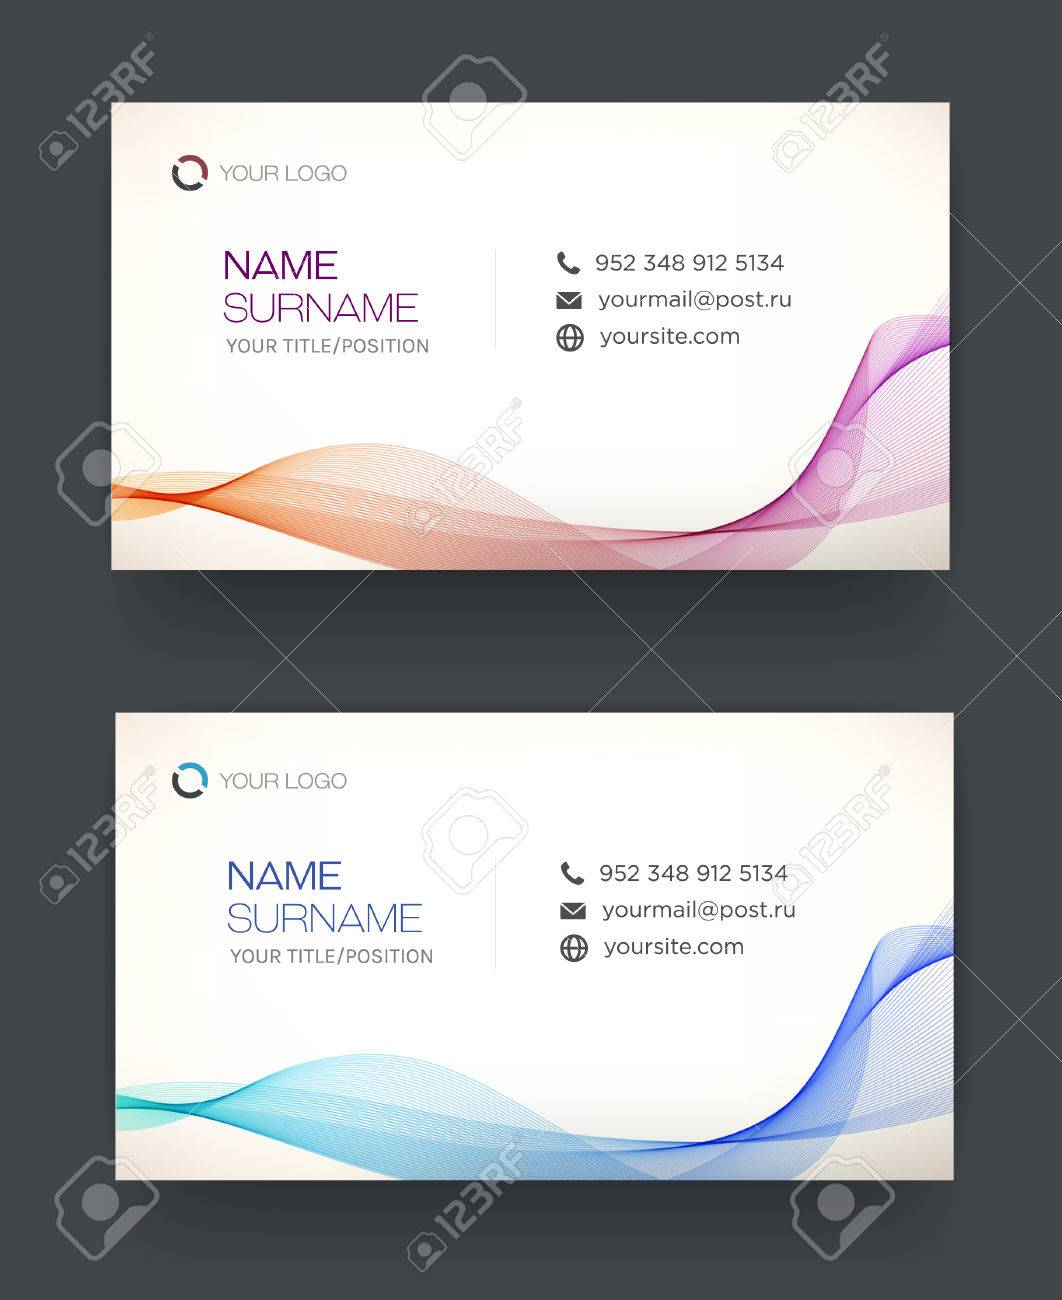 Business card template blue pattern vector design editable business card template blue pattern vector design editable personal card stock vector friedricerecipe Images